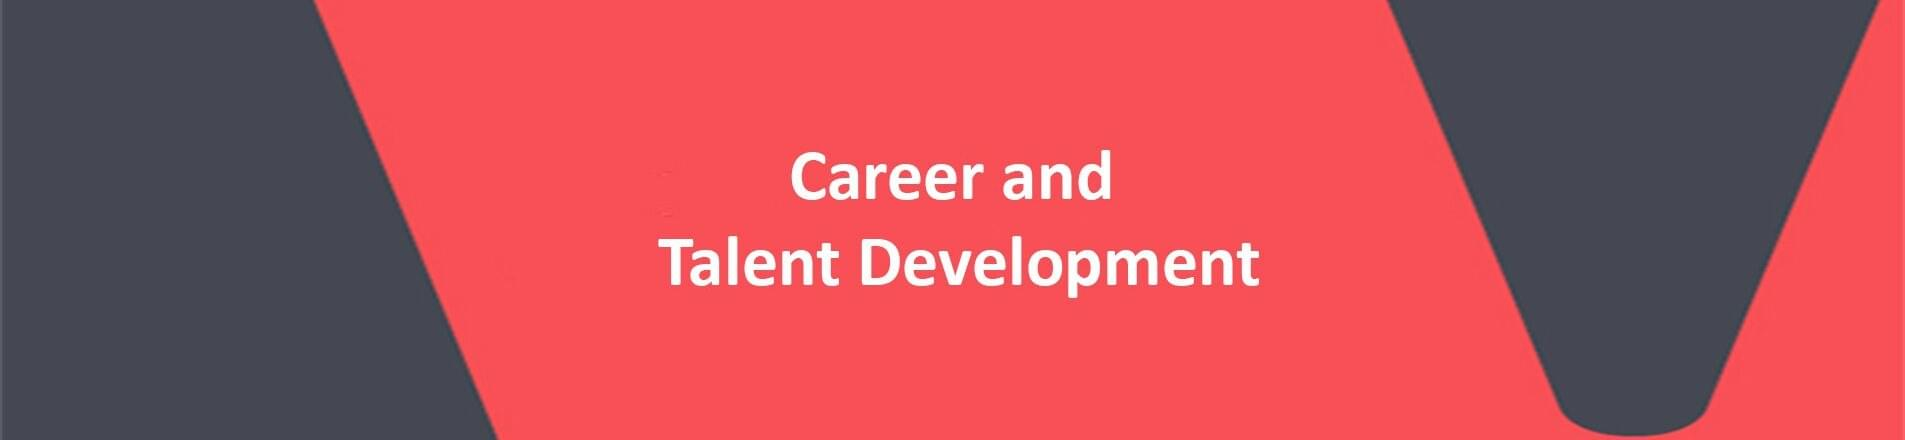 Red background with white text overlaid spelling Career and Talent Development.